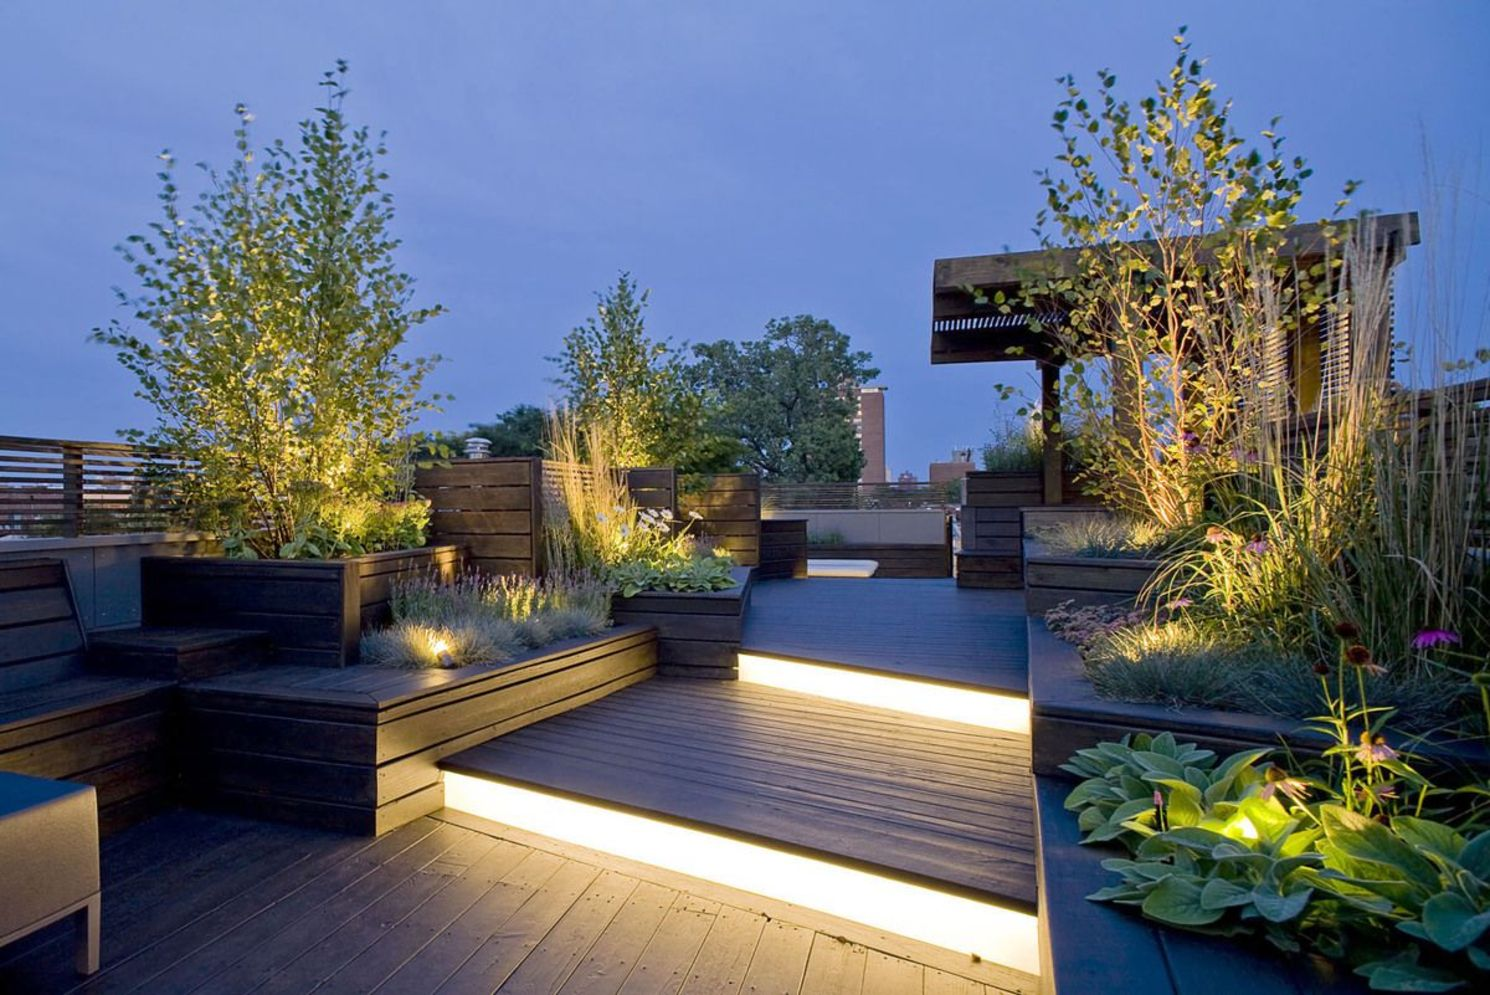 Beautiful garden lighting ideas with ground level ambient light giving luxurious resorts look Image 31